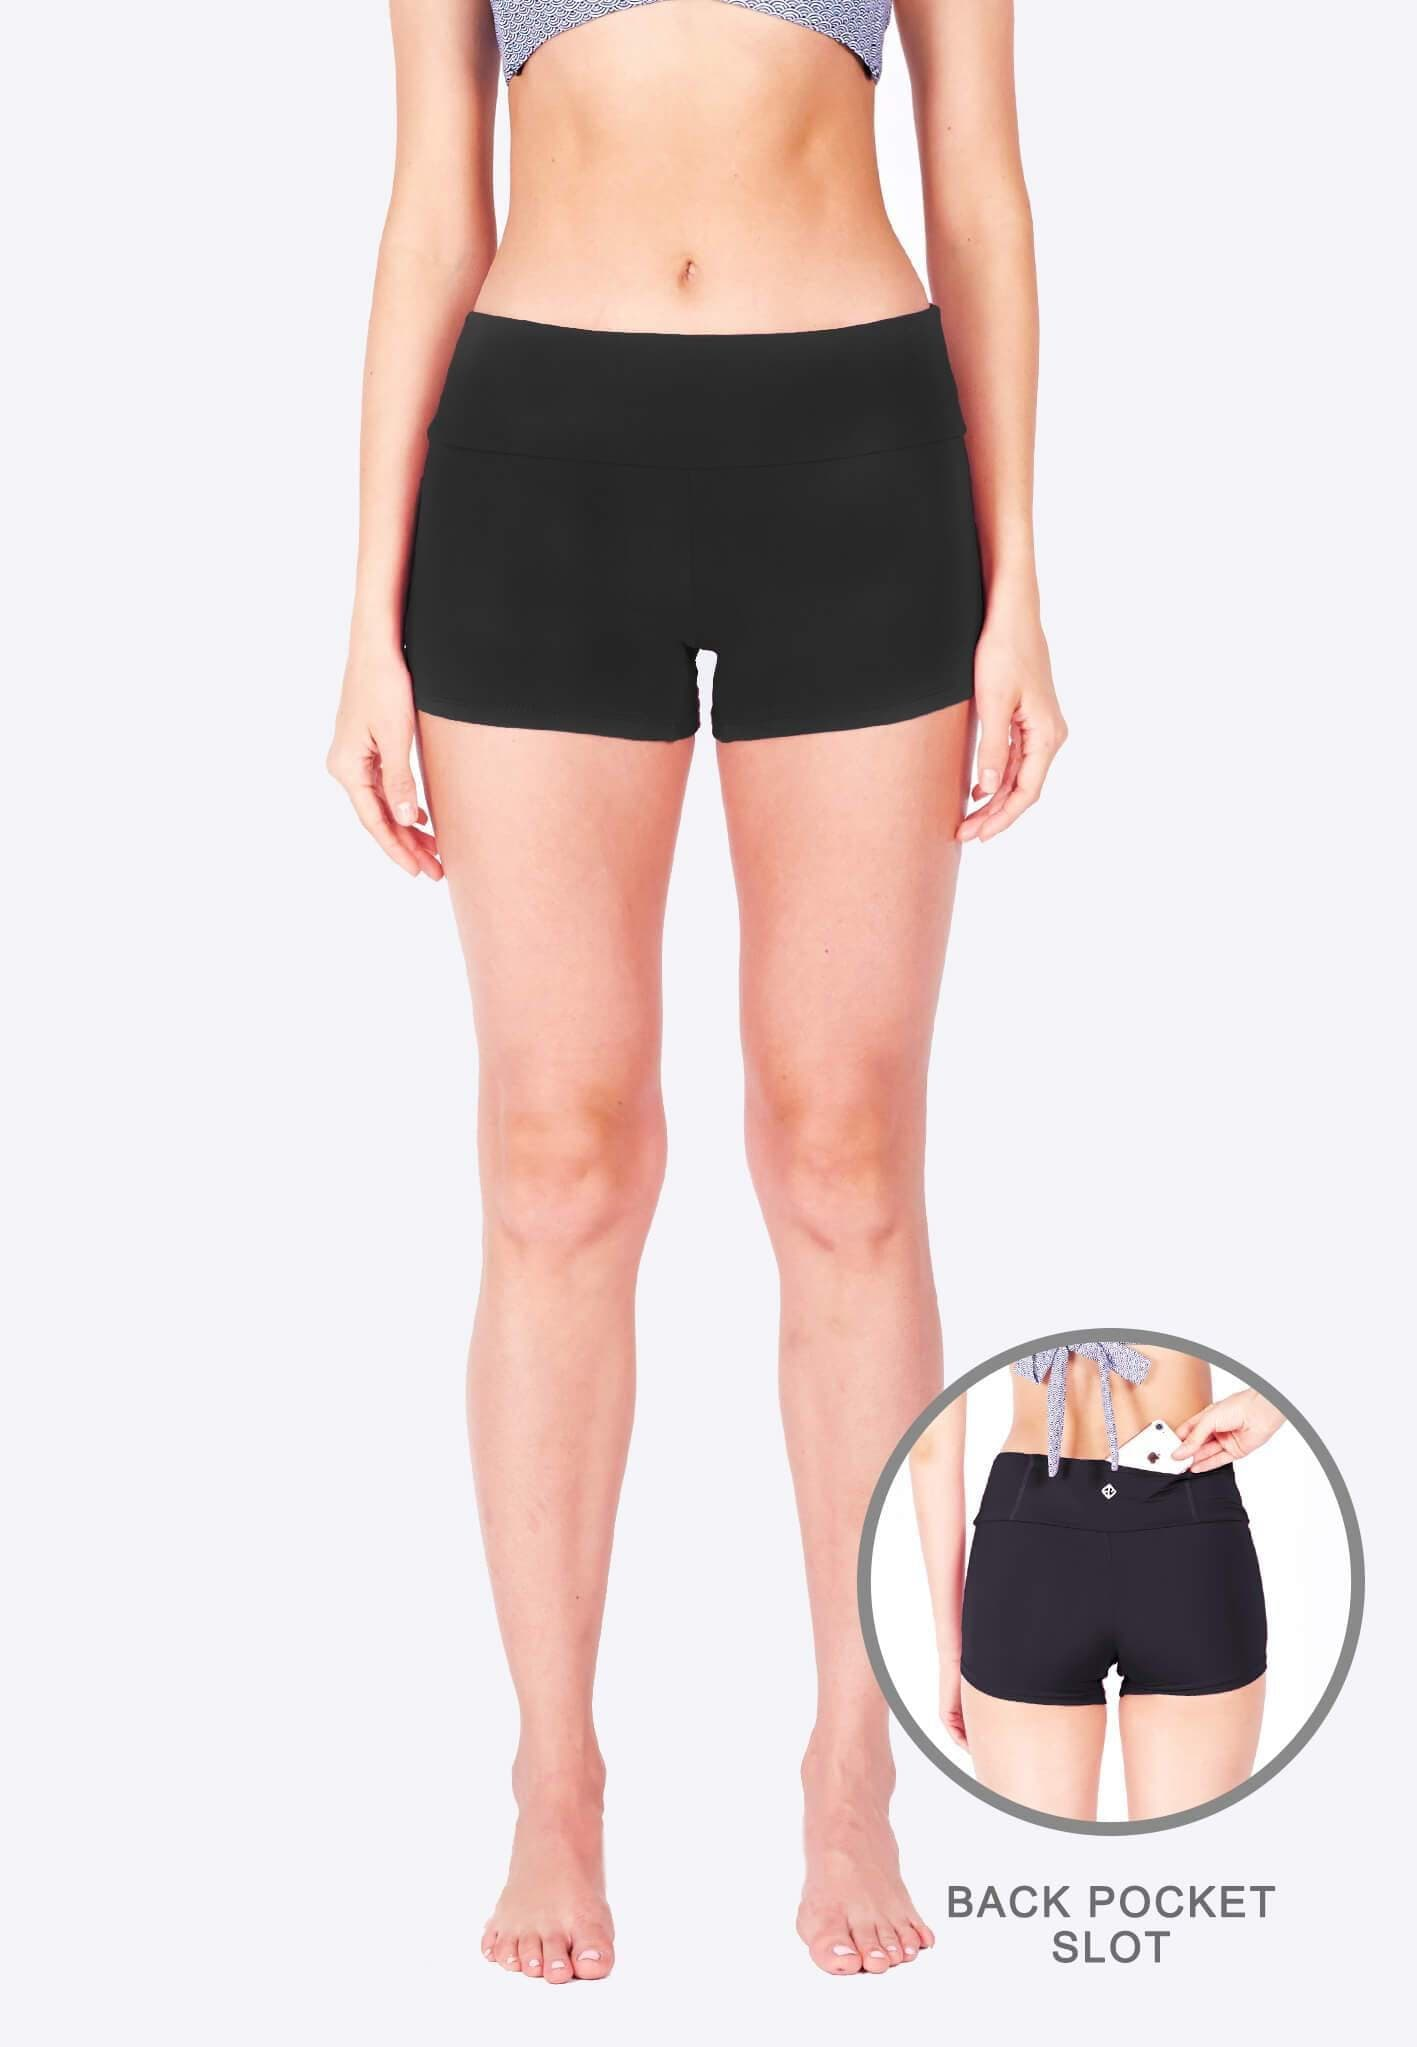 Athleiswim™ Boyshorts in Black (S - 2XL)